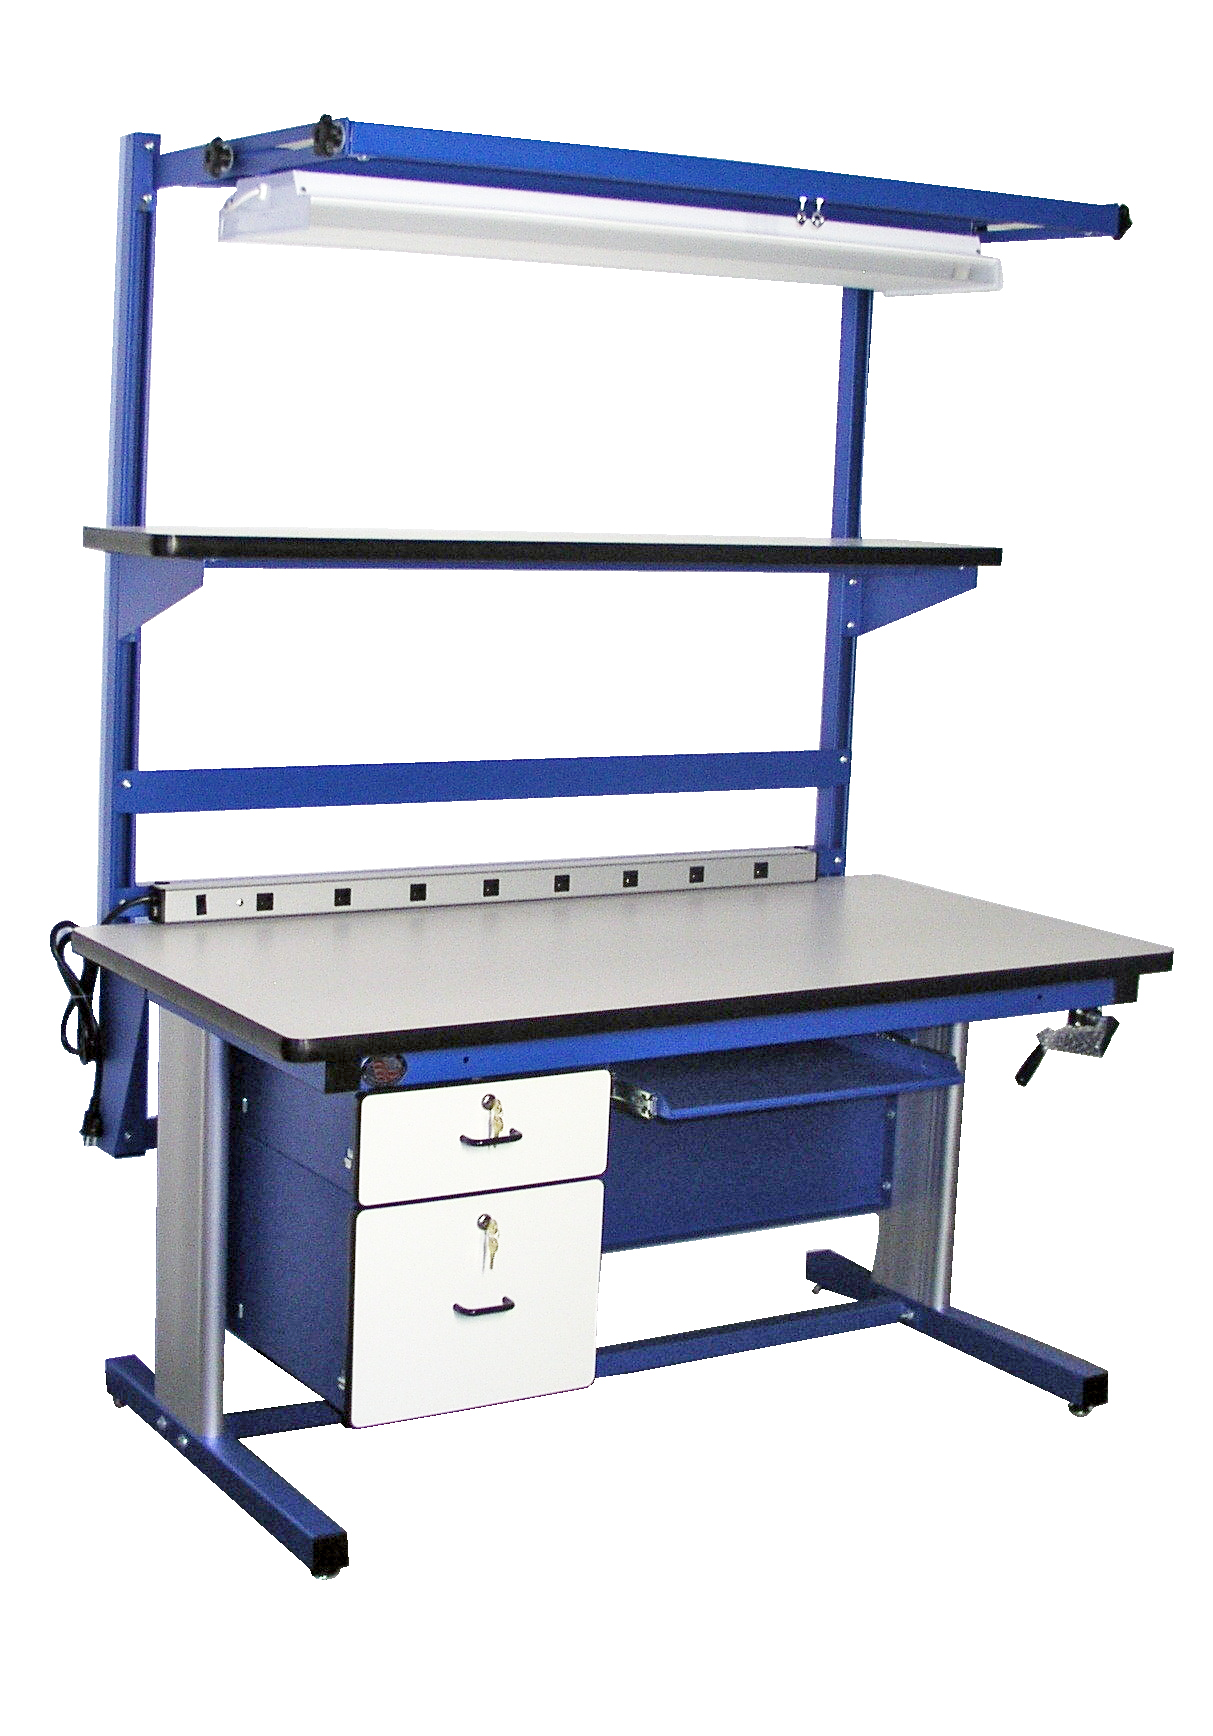 Workbenches Idea File Idea File Pro Line Workbenches